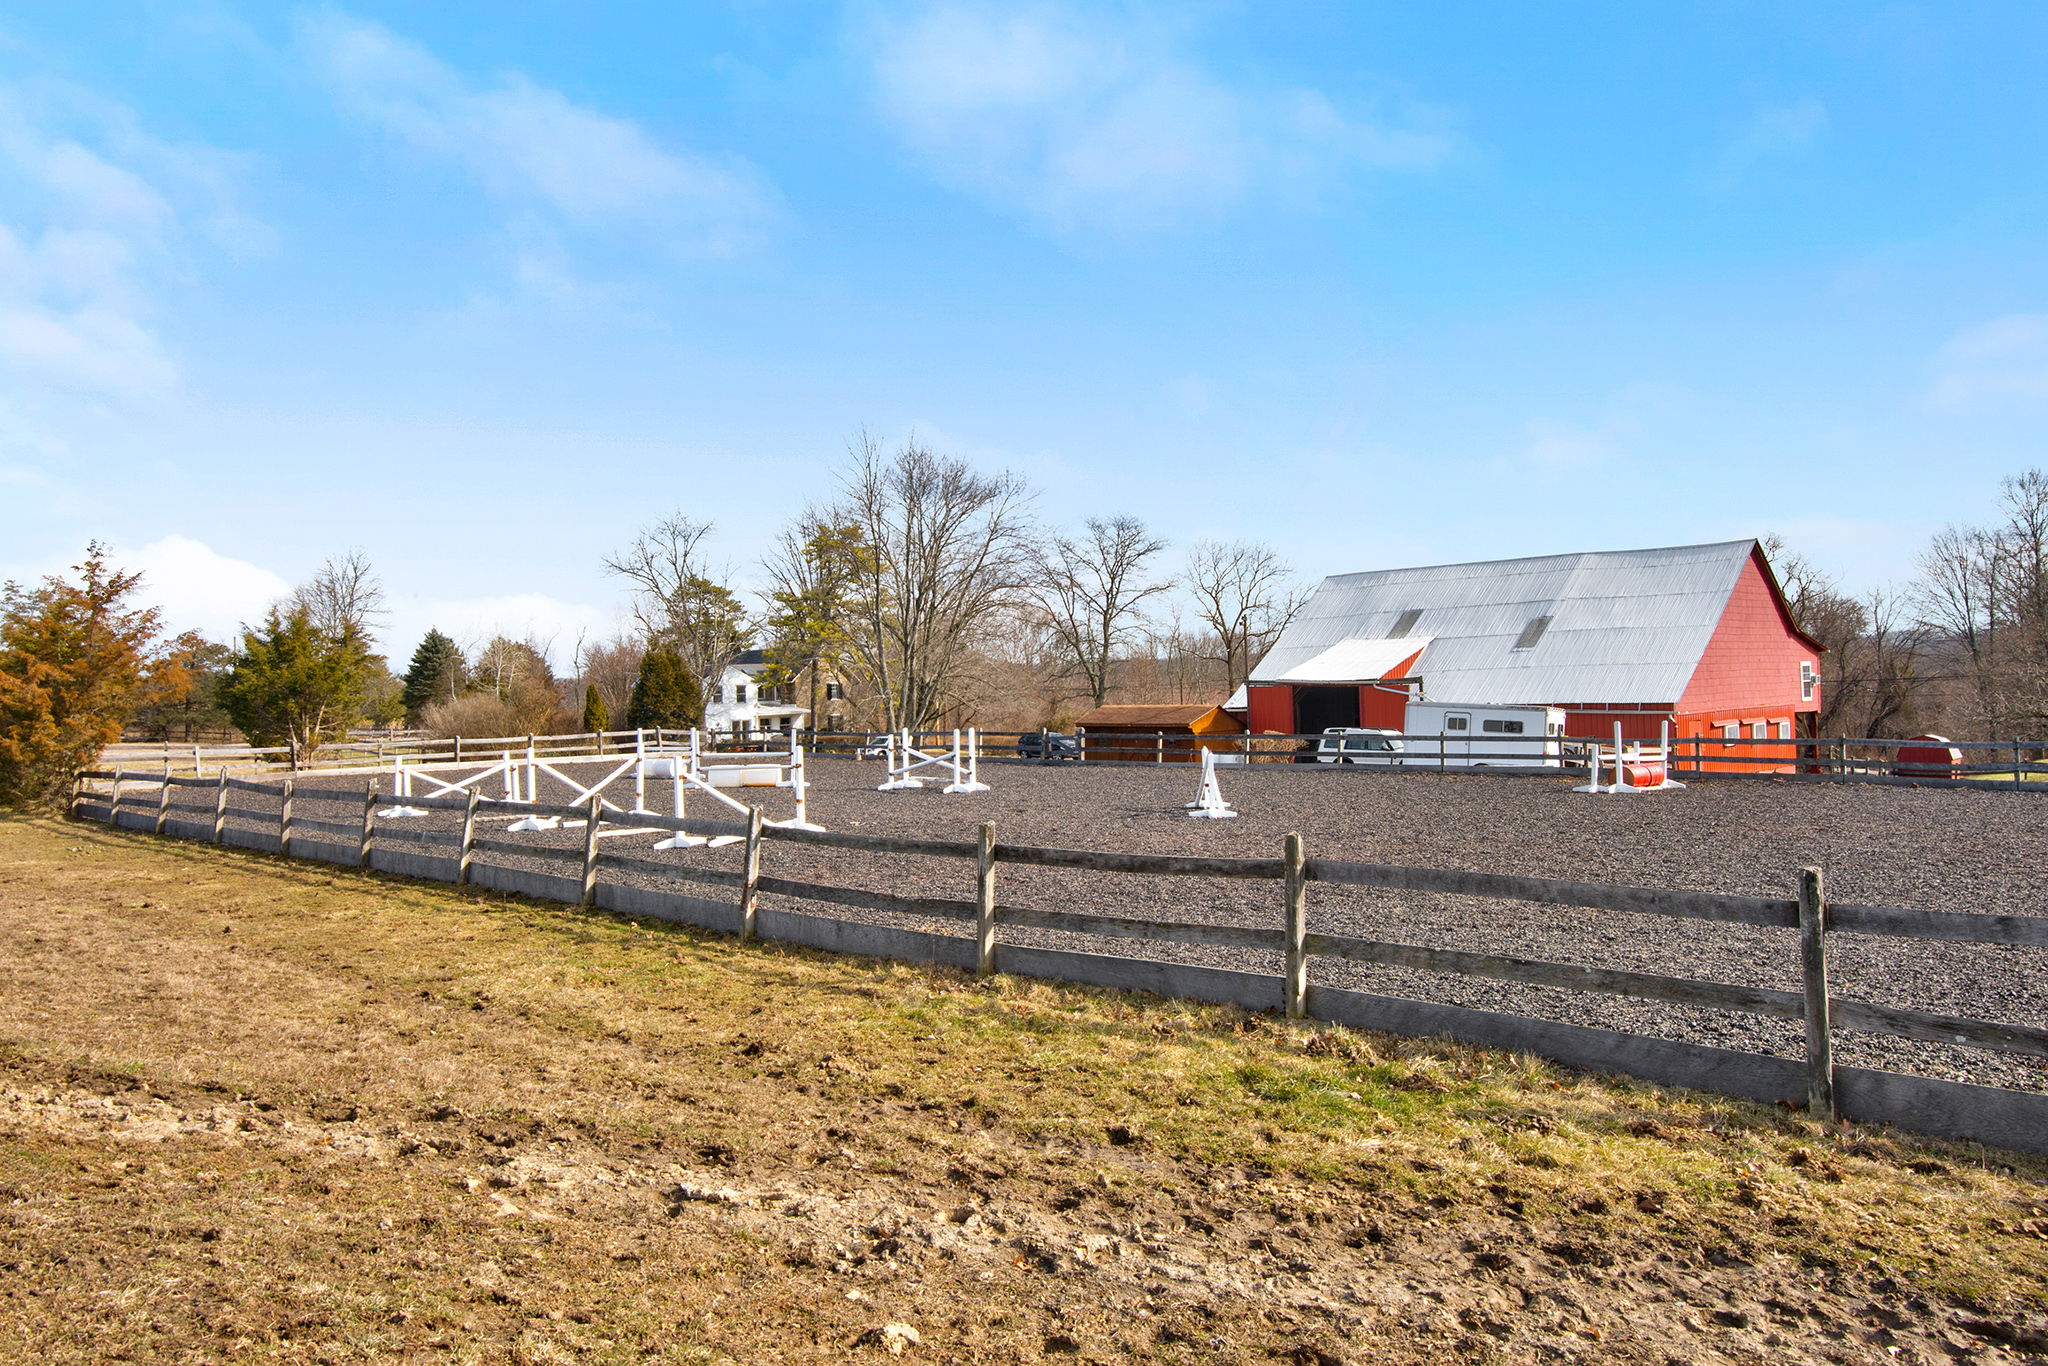 Bucks County Horse Property | Bucks County Country Property | Doylestown Realtor | Doylestown Realtors